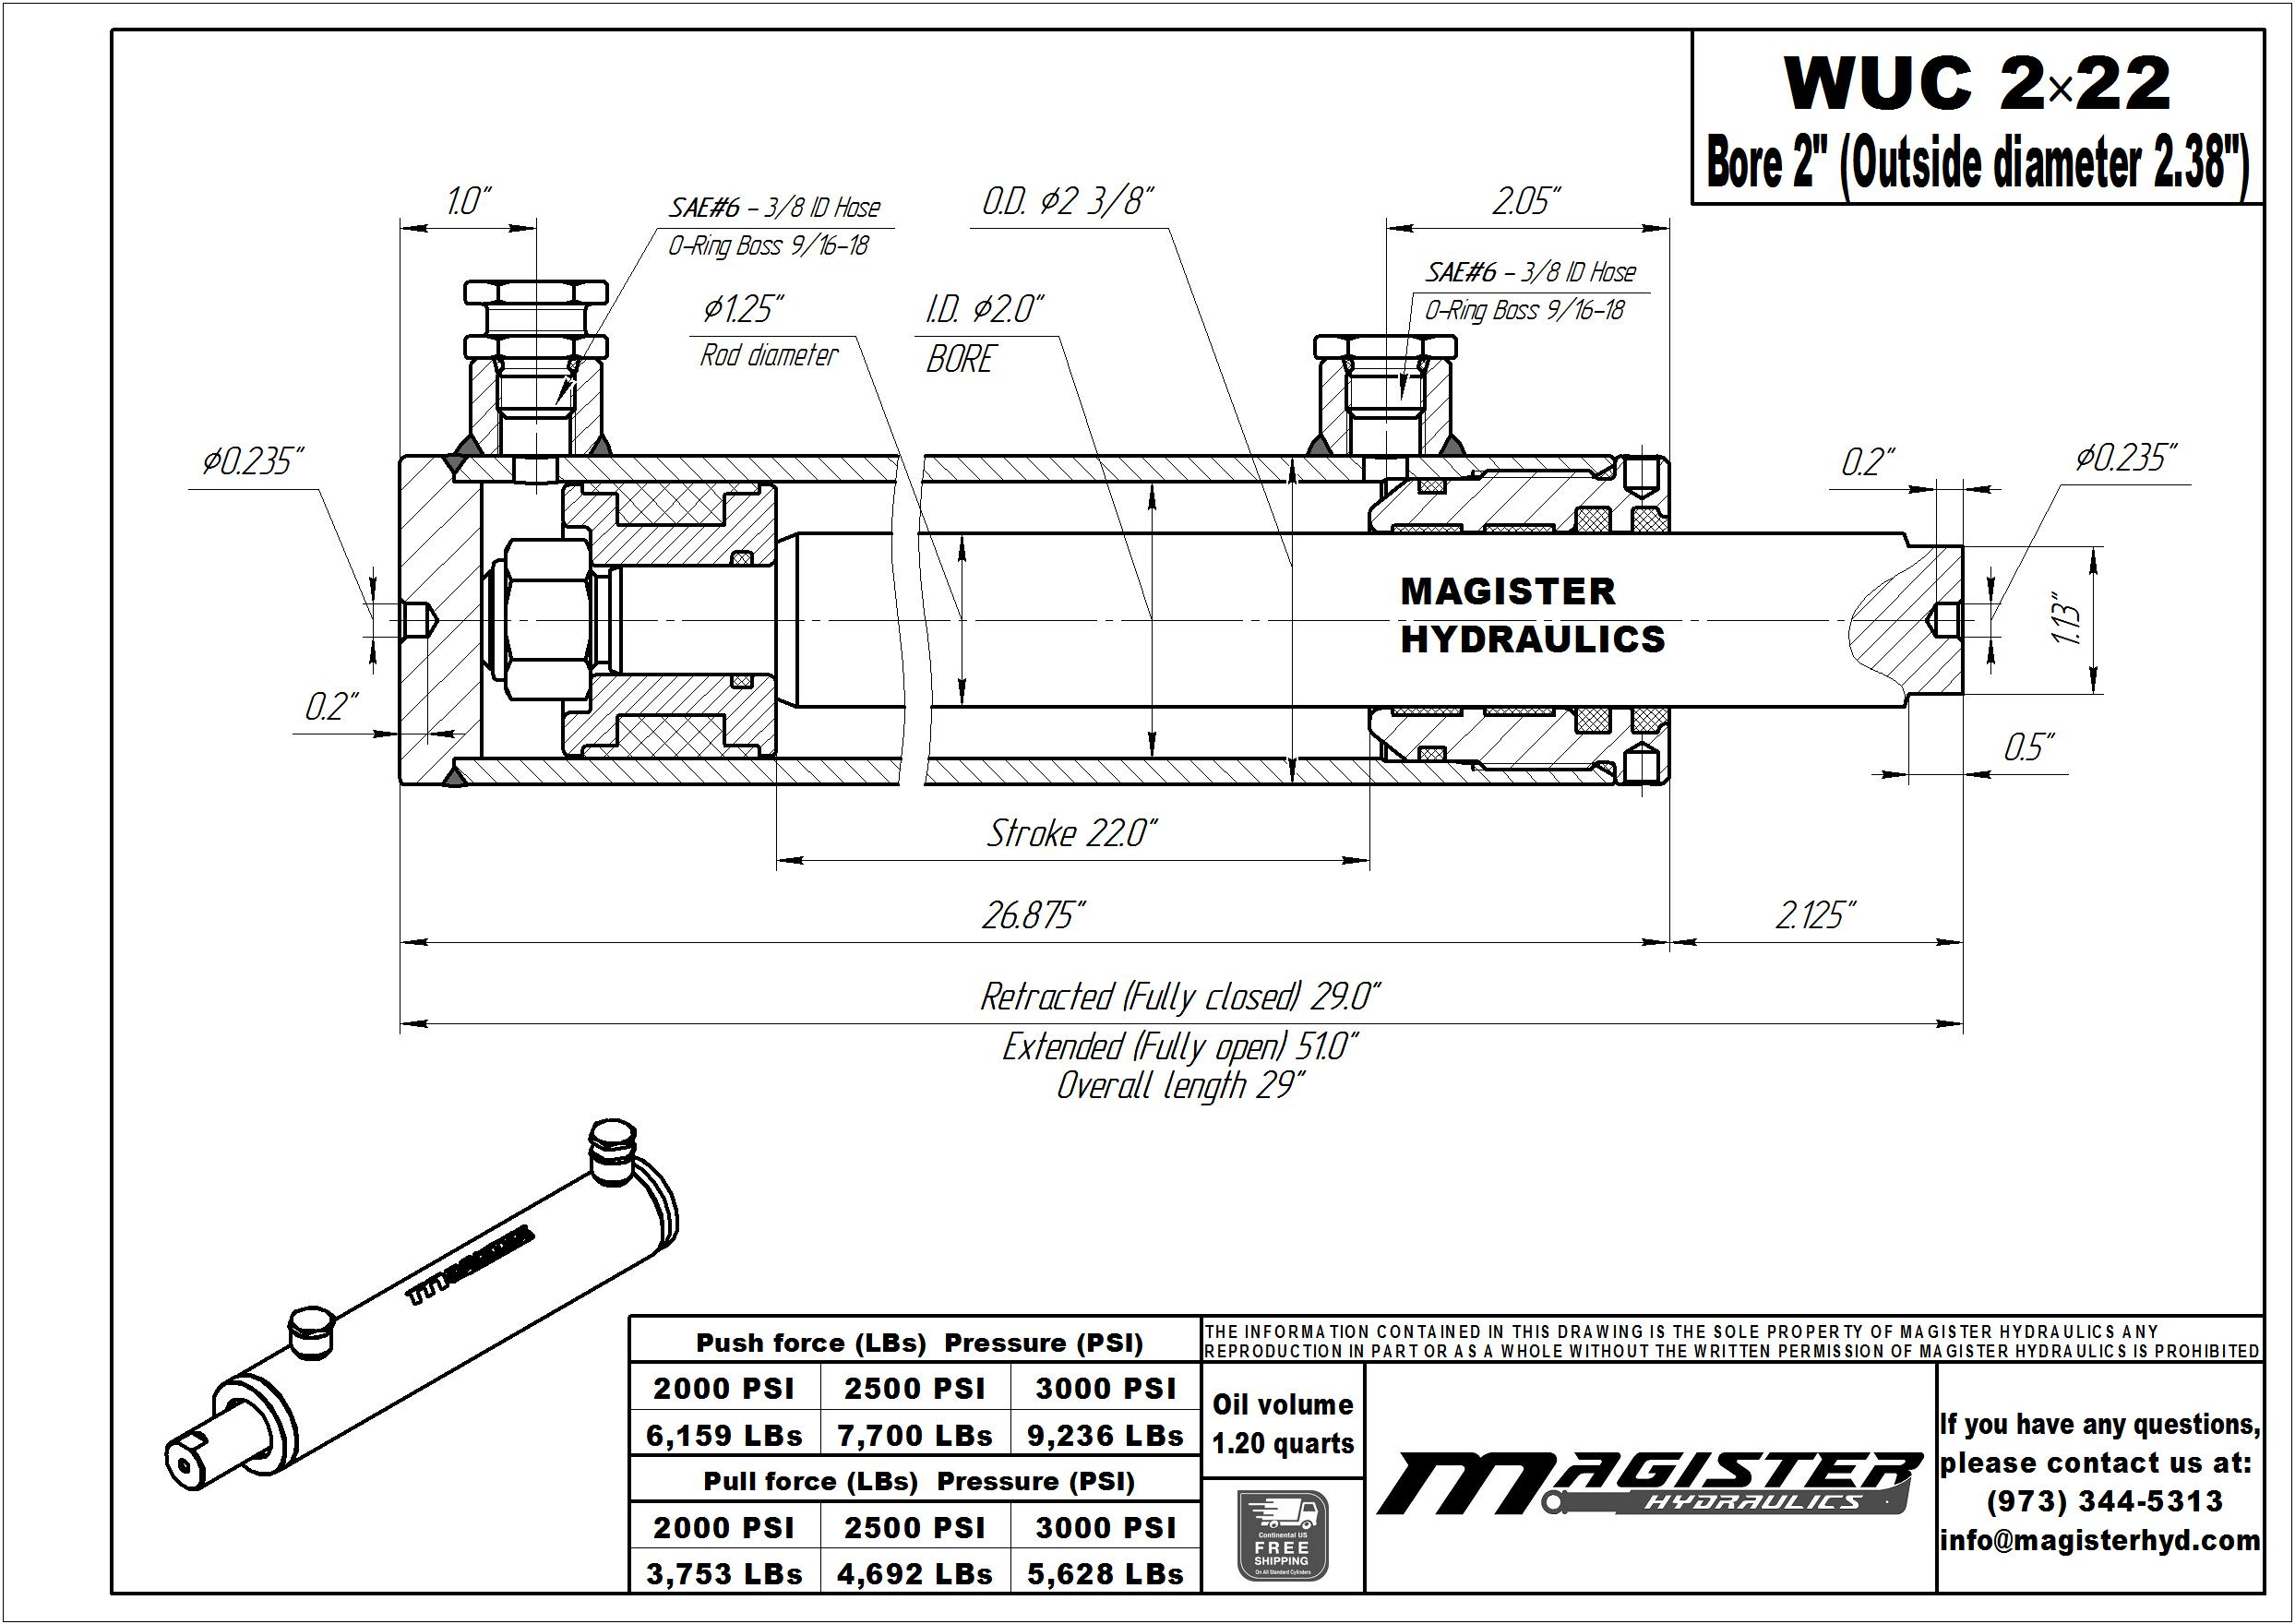 2 bore x 22 stroke hydraulic cylinder, welded universal double acting cylinder   Magister Hydraulics